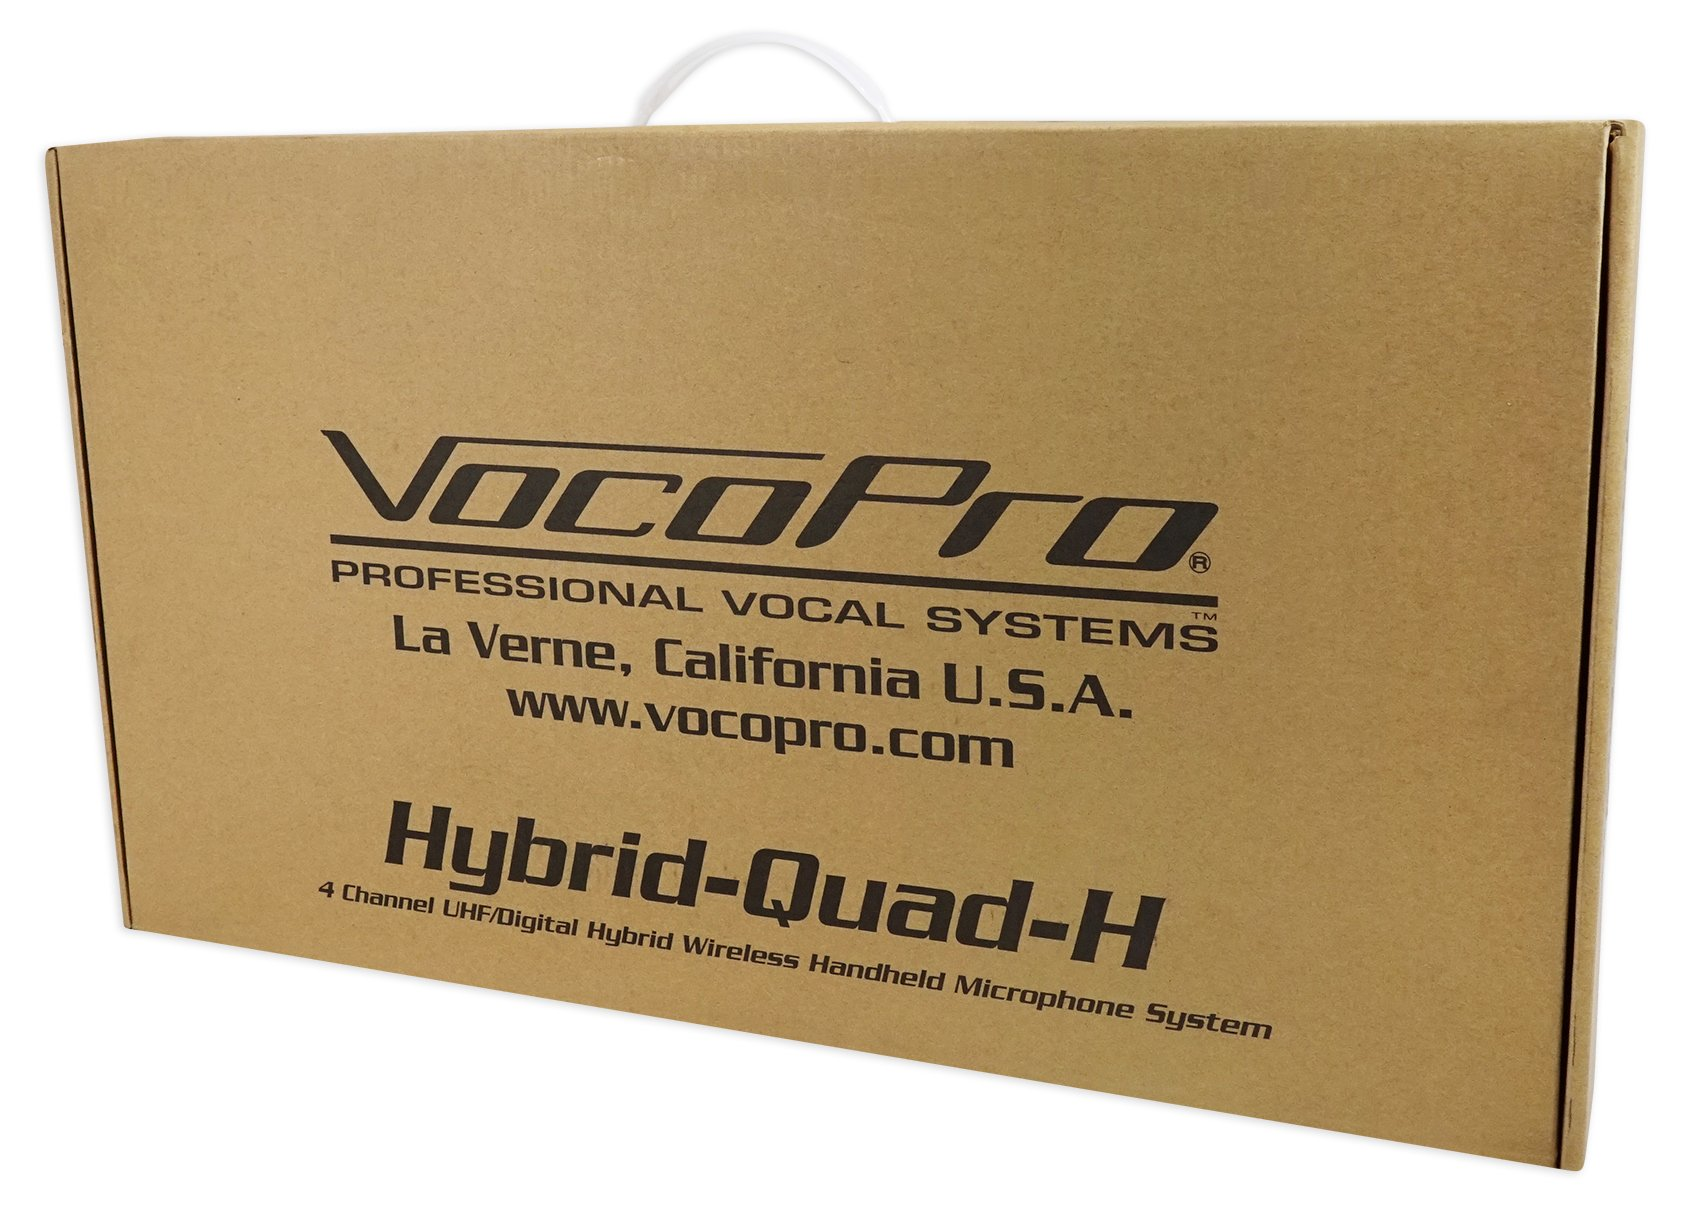 VOCOPRO Four-Channel UHF Digital Wireless Handheld Microphone Mics System-H2